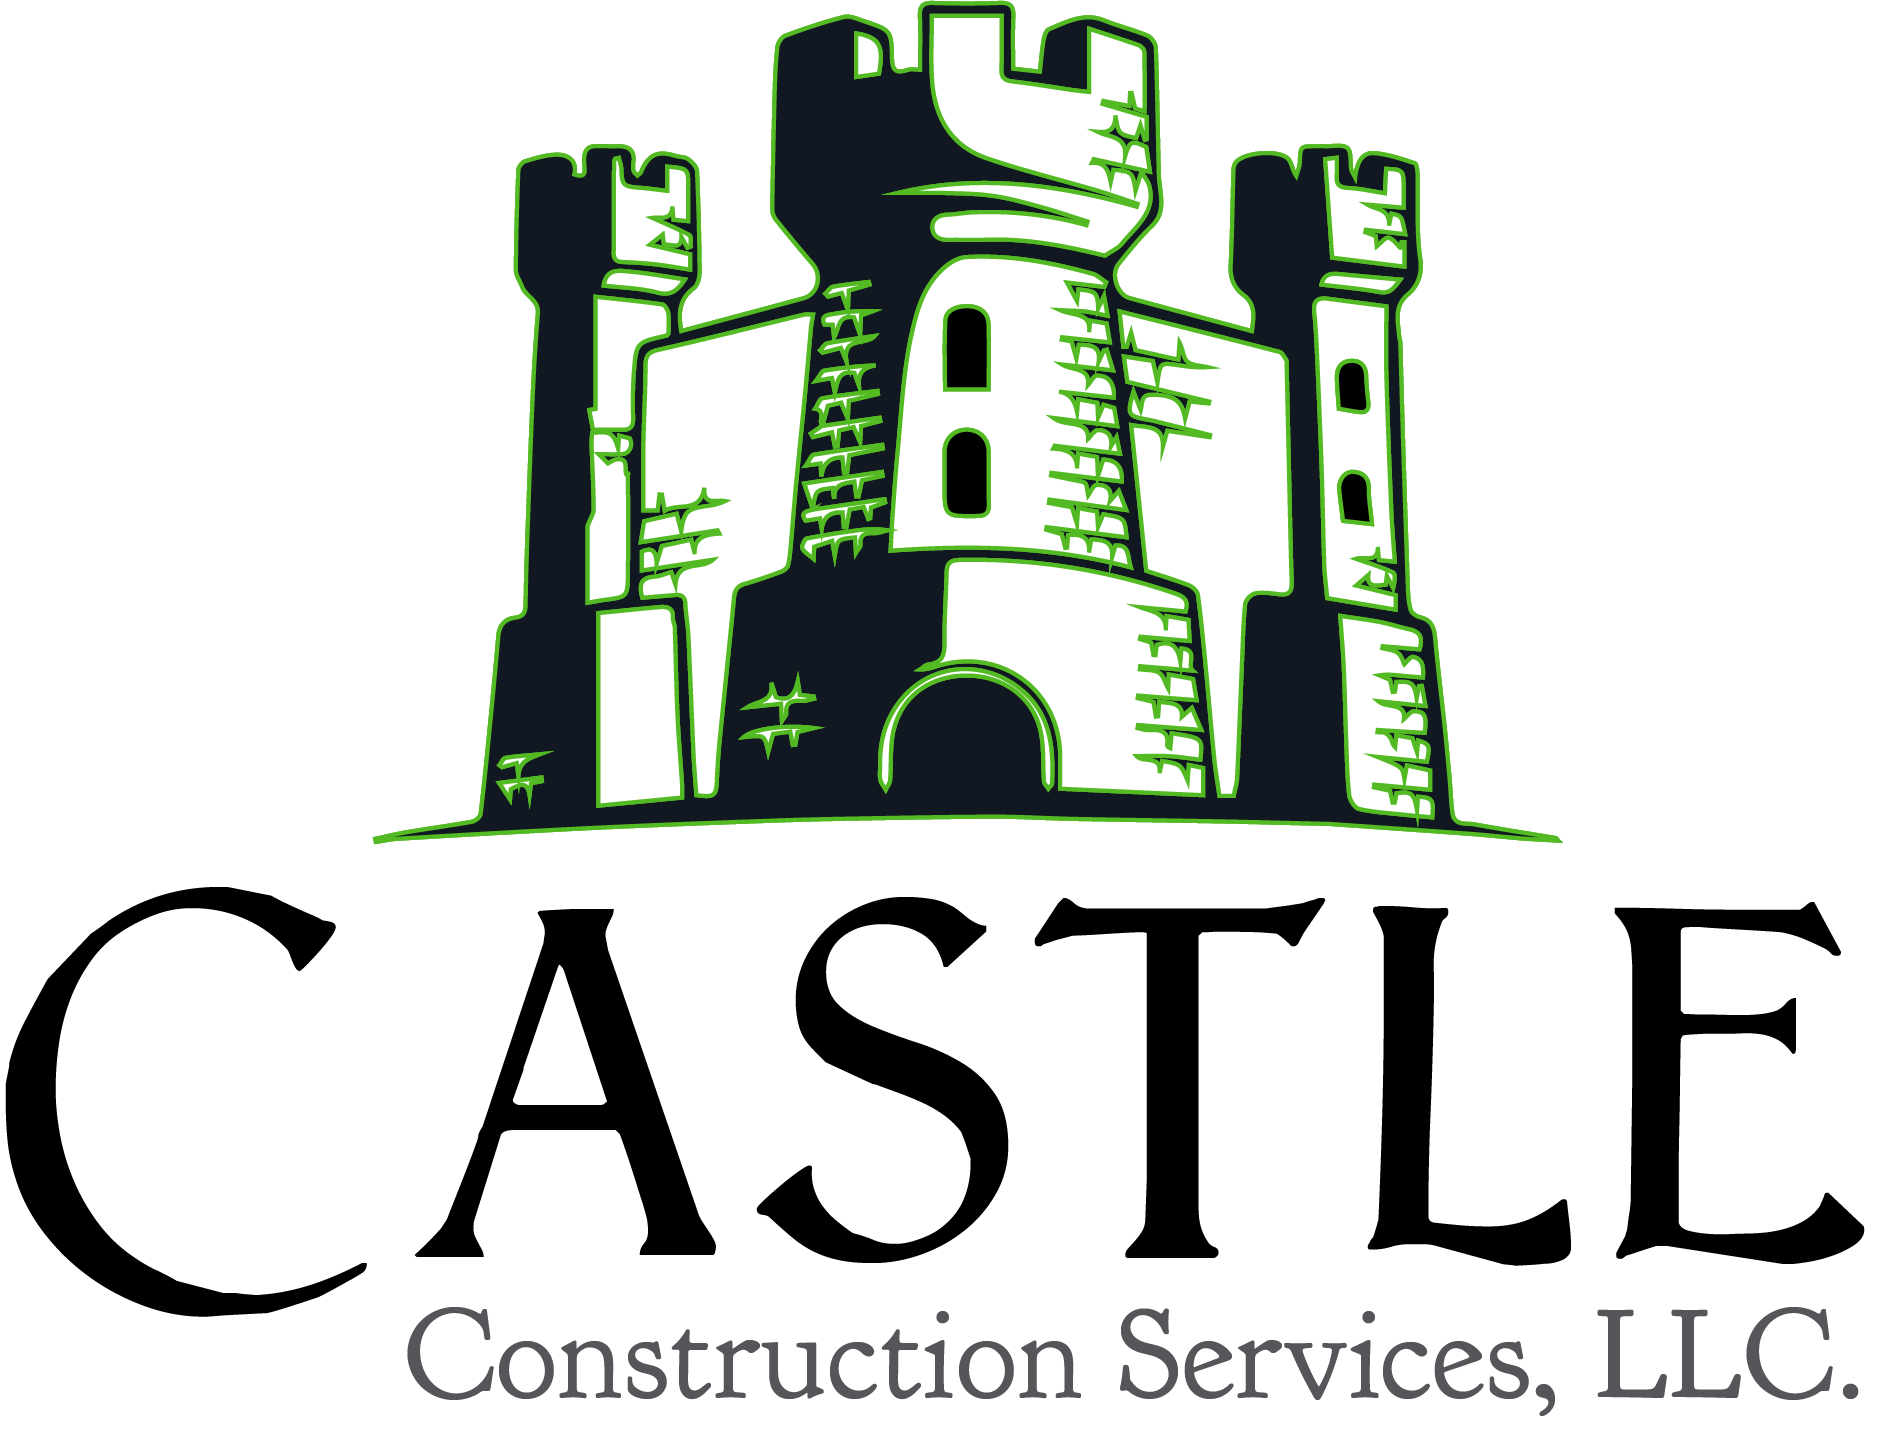 Castle Construction Services, LLC